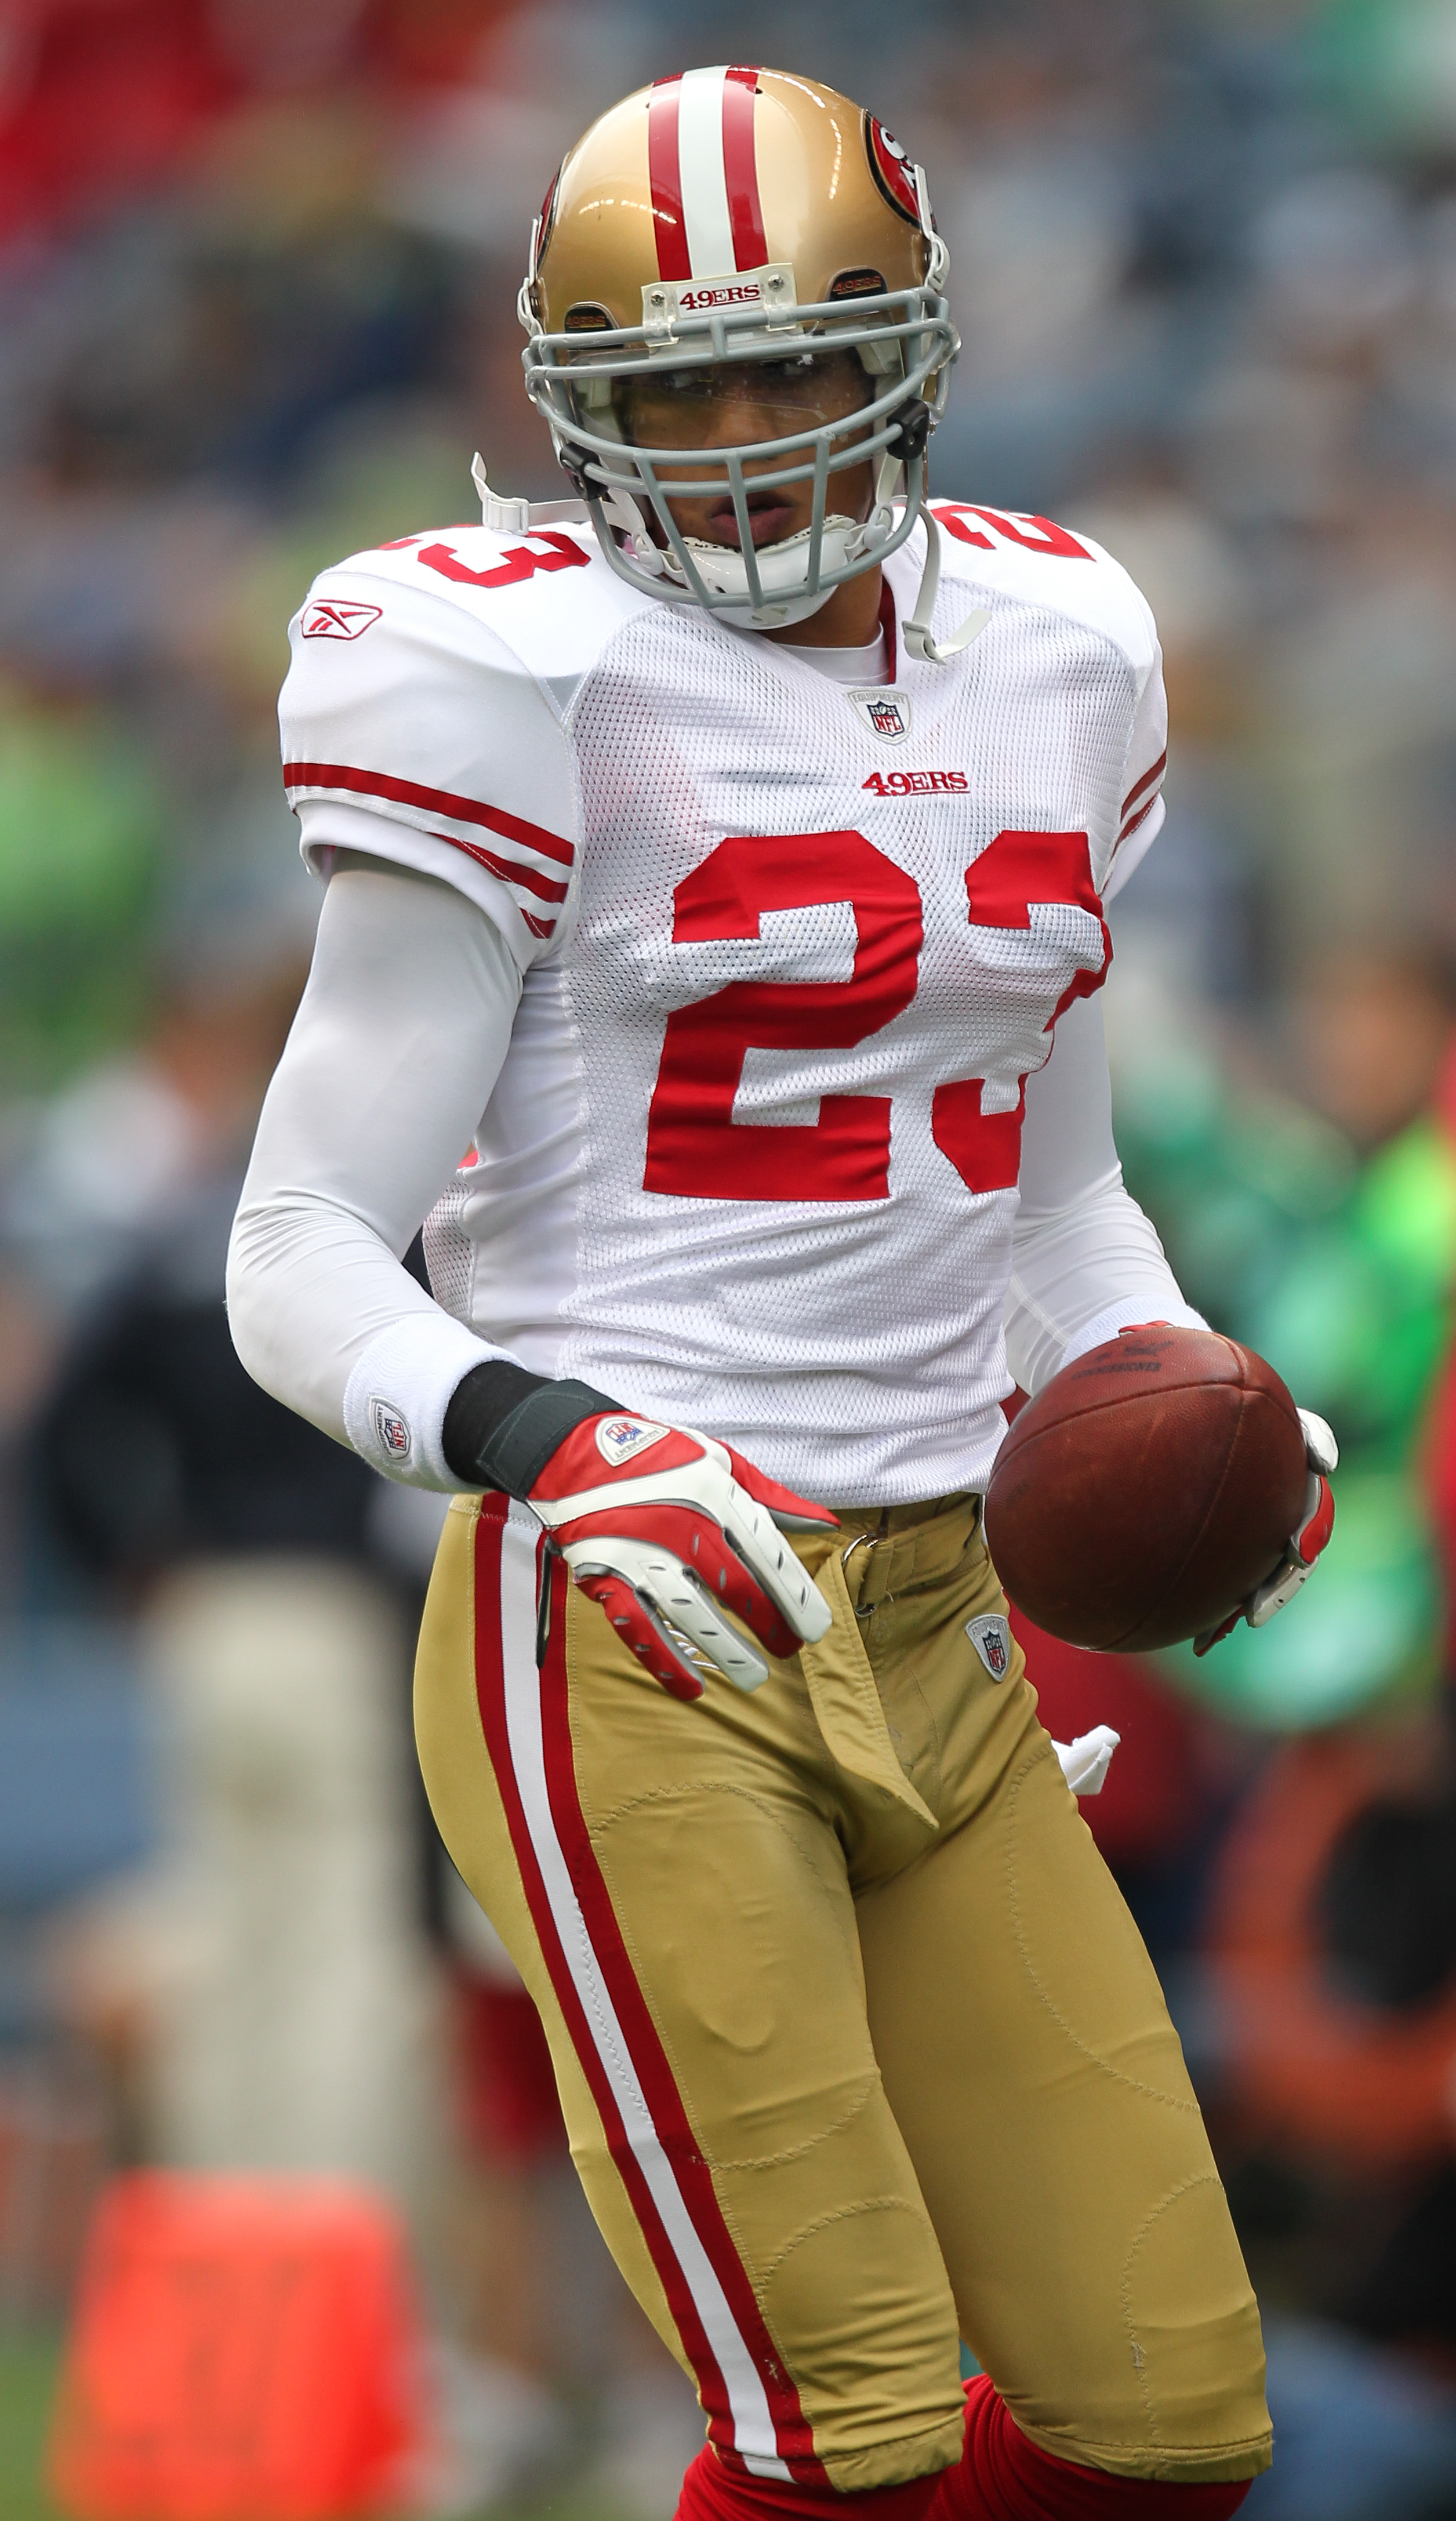 SEATTLE - SEPTEMBER 12:  Safety Taylor Mays #23 of the San Francisco 49ers warms up prior to the NFL season opener against the Seattle Seahawks at Qwest Field on September 12, 2010 in Seattle, Washington. (Photo by Otto Greule Jr/Getty Images)